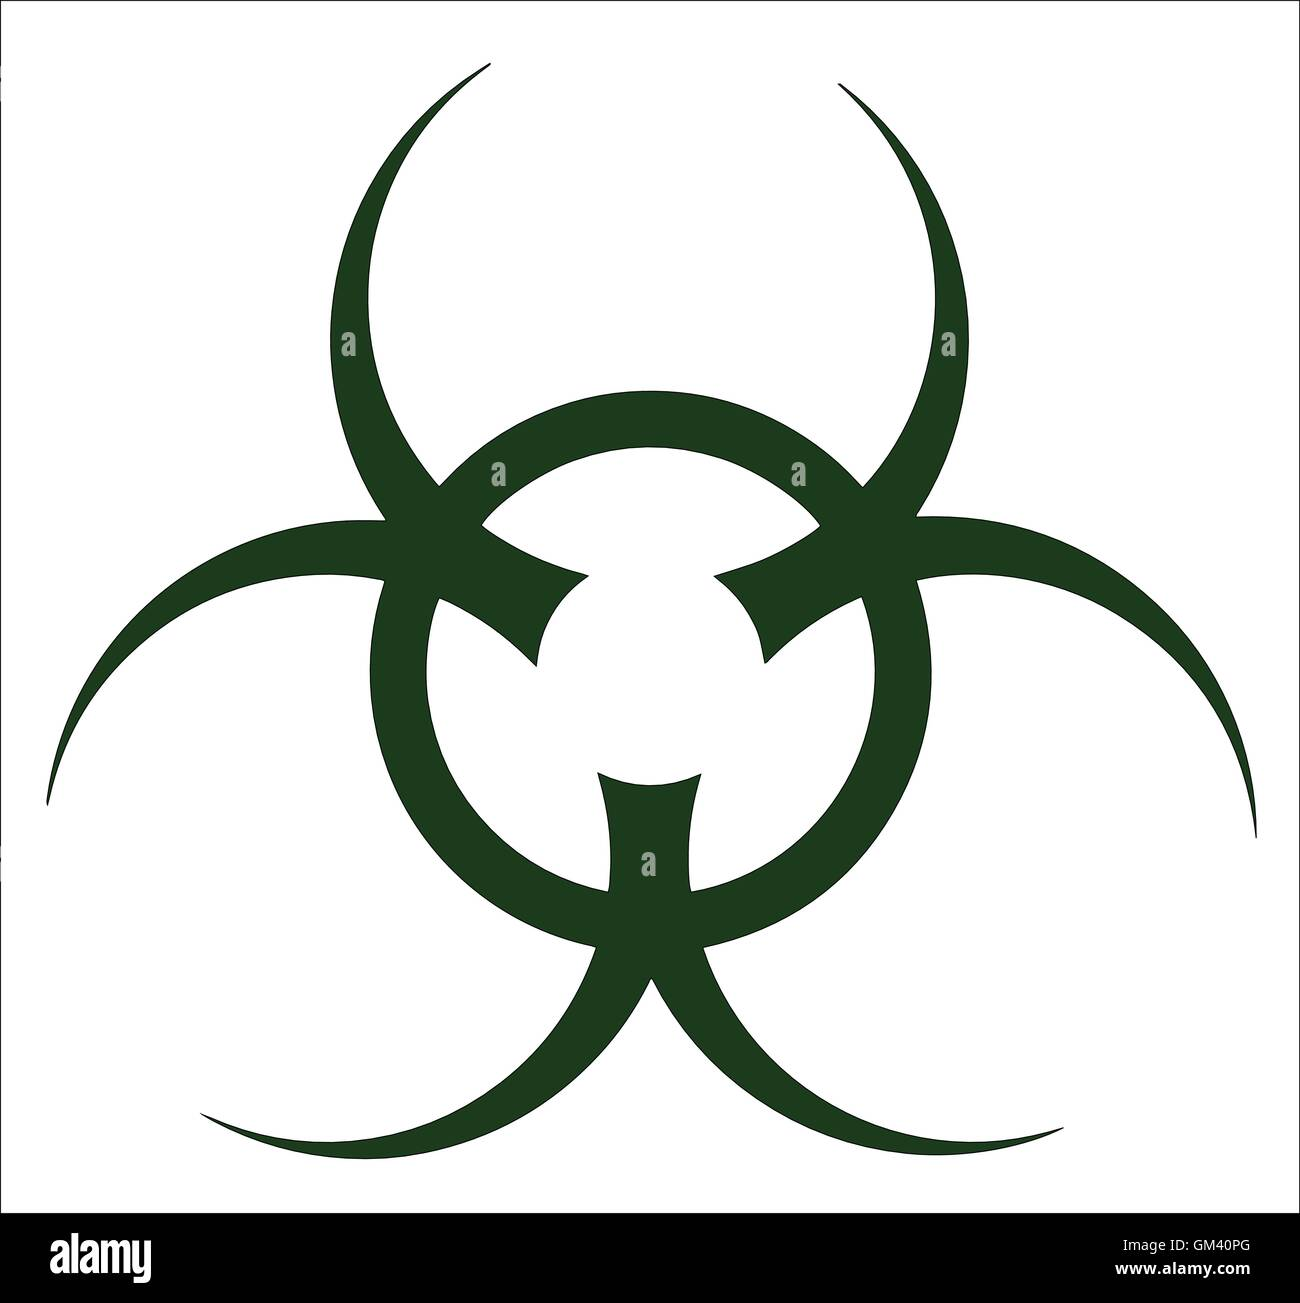 Biological Hazard Symbol Stock Photos Biological Hazard Symbol